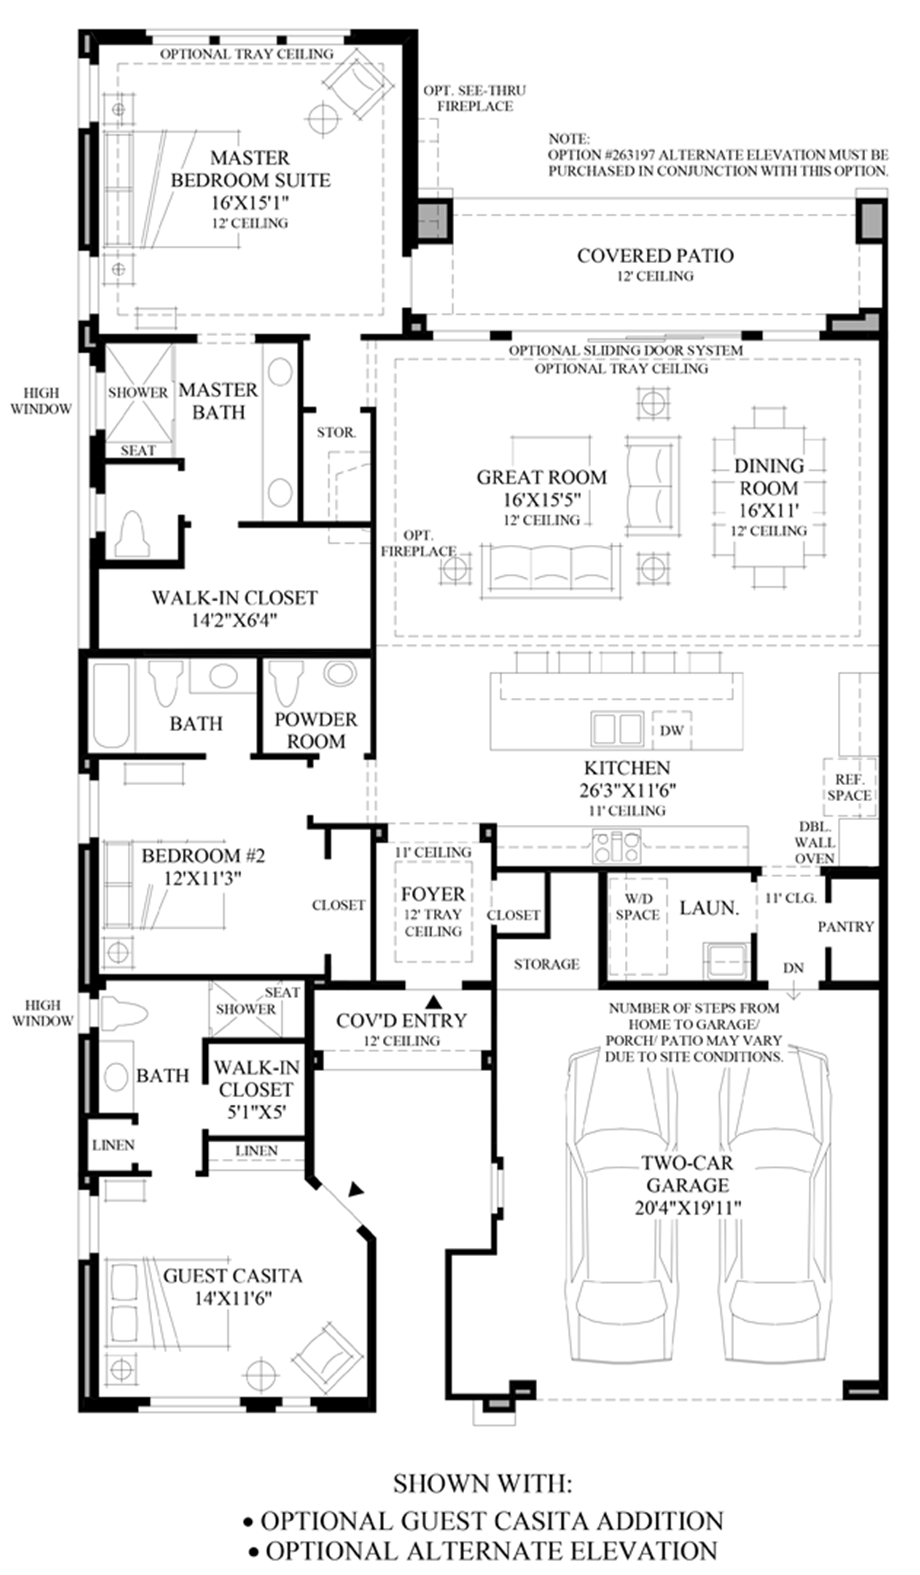 Optional Guest Casita Addition & Alternate Elevation Floor Plan